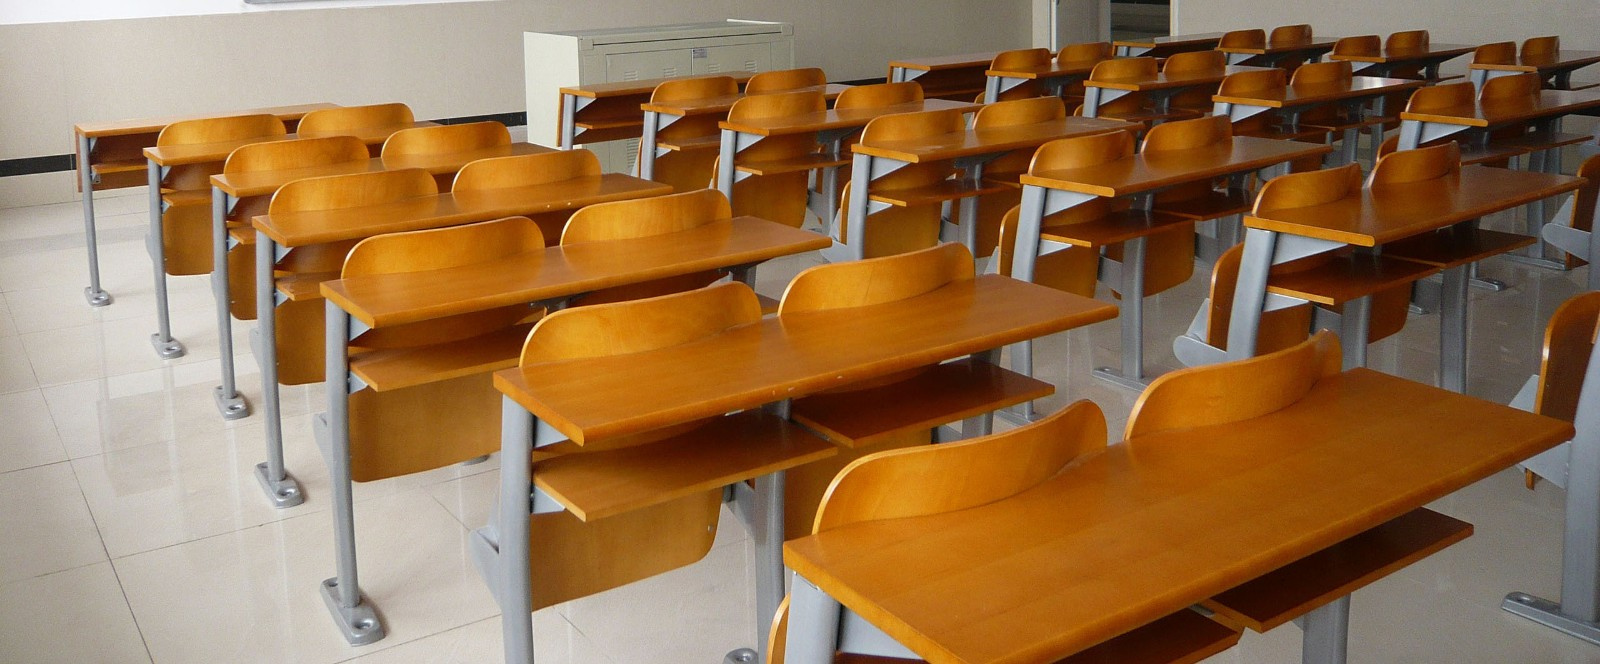 HONGJI ISO9001 certified primary school furniture supplier for high school-12